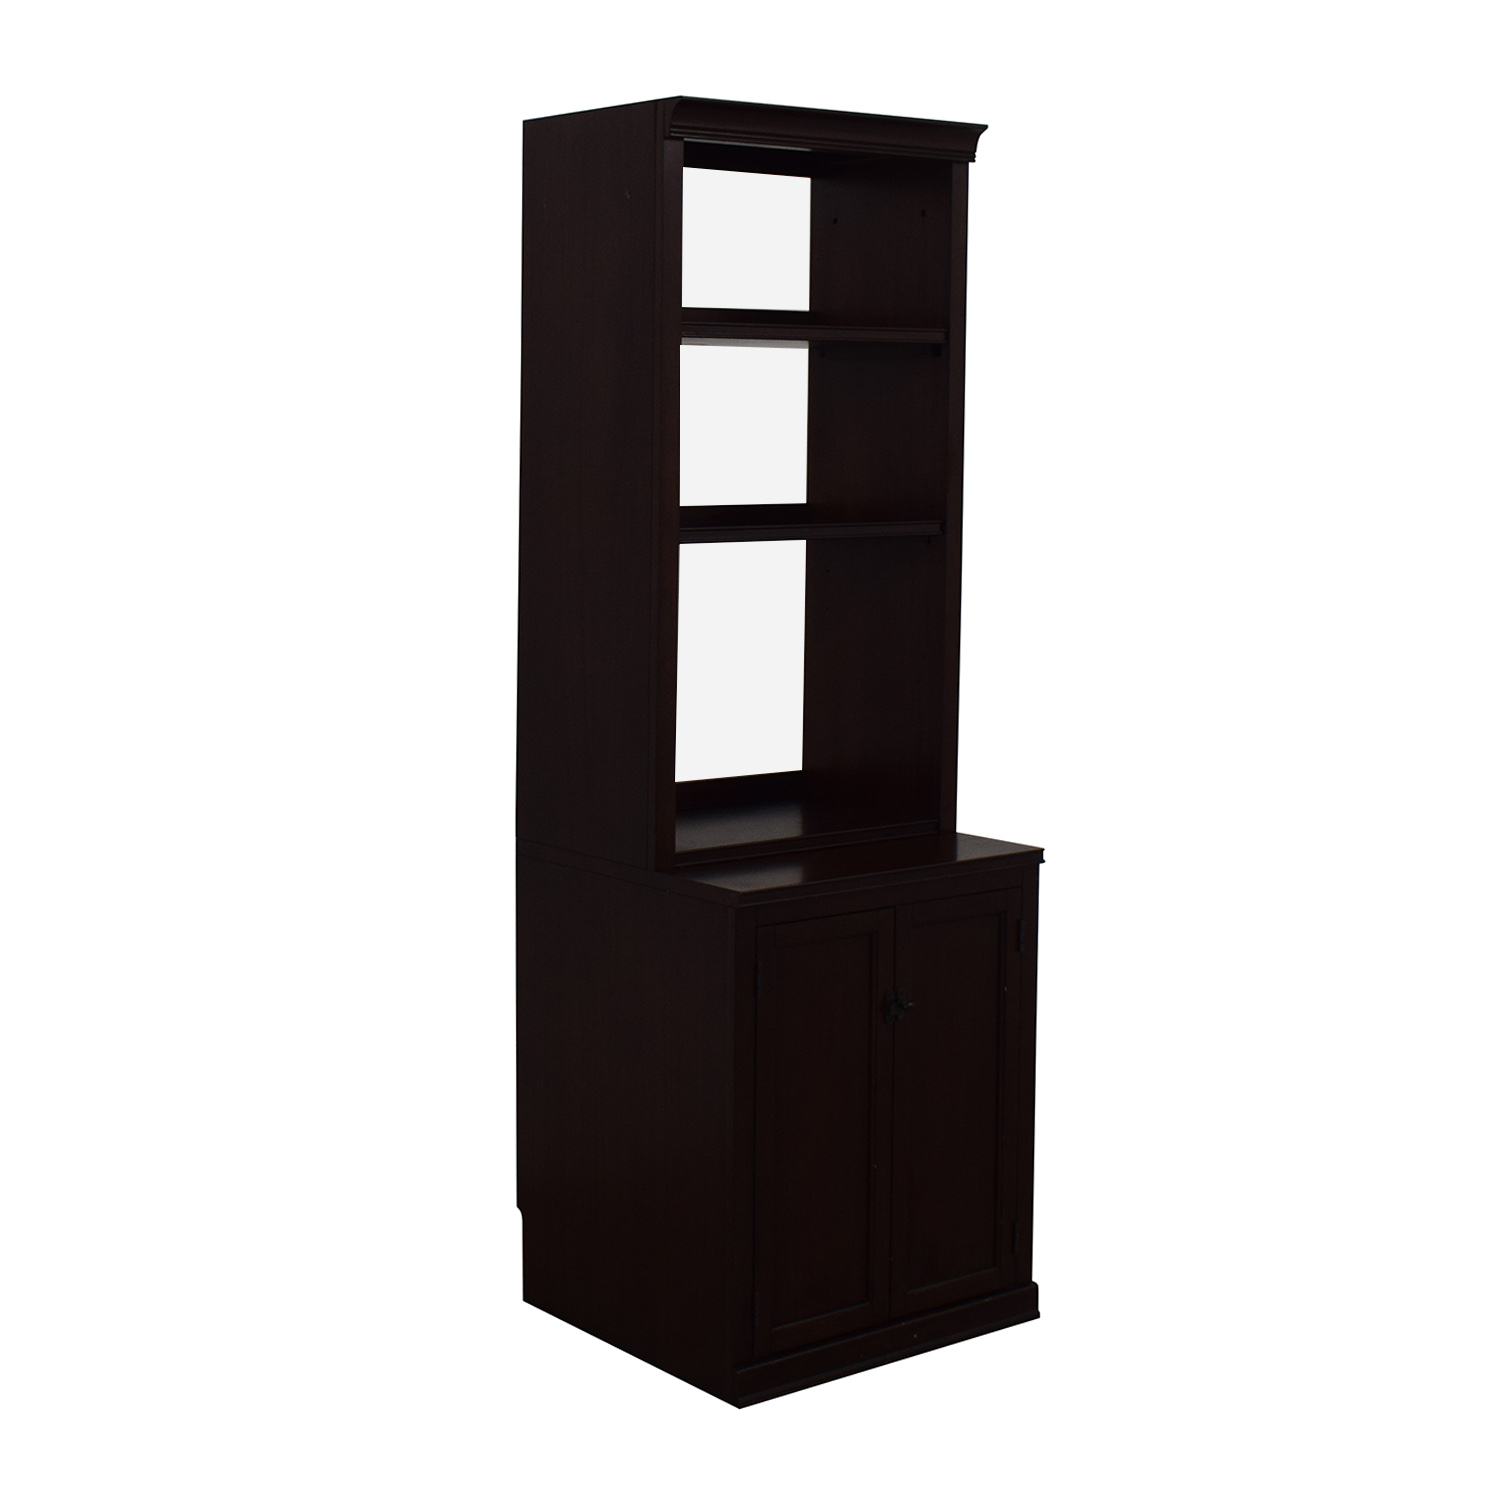 Pottery Barn Pottery Barn Cabinet brown